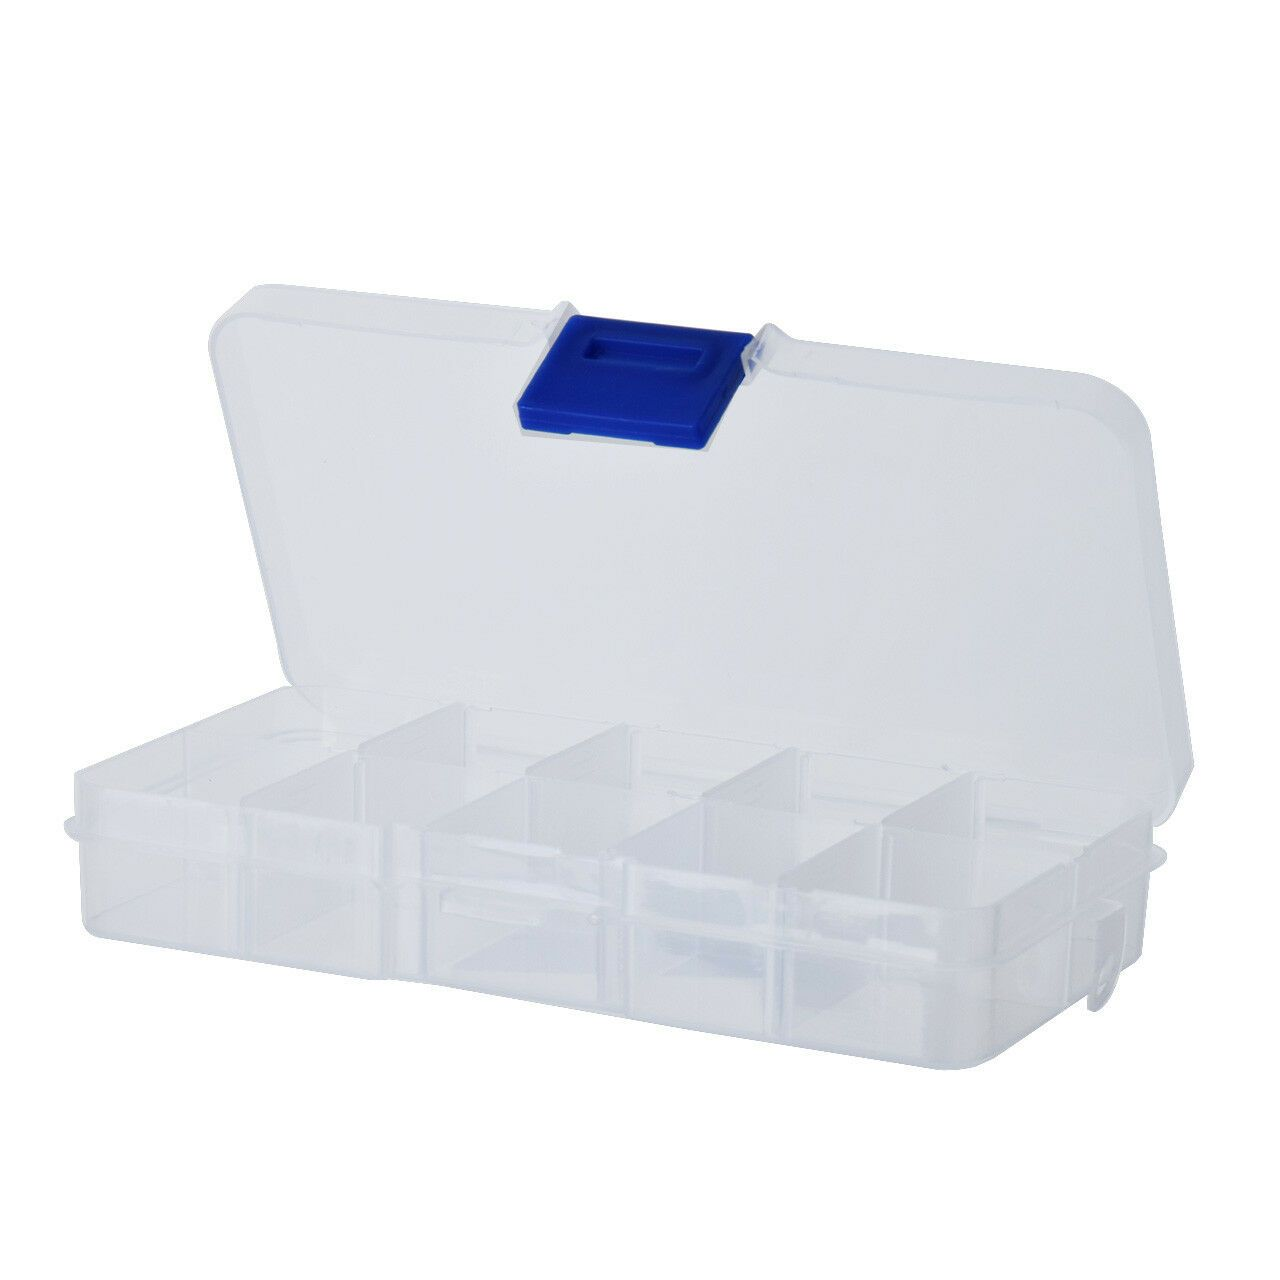 Plastic Storage Box Case For Jewelry Display Organizer 10 Compartment Lac Storage Conta With Images Plastic Box Storage Shoe Storage Clear Boxes Stackable Storage Bins